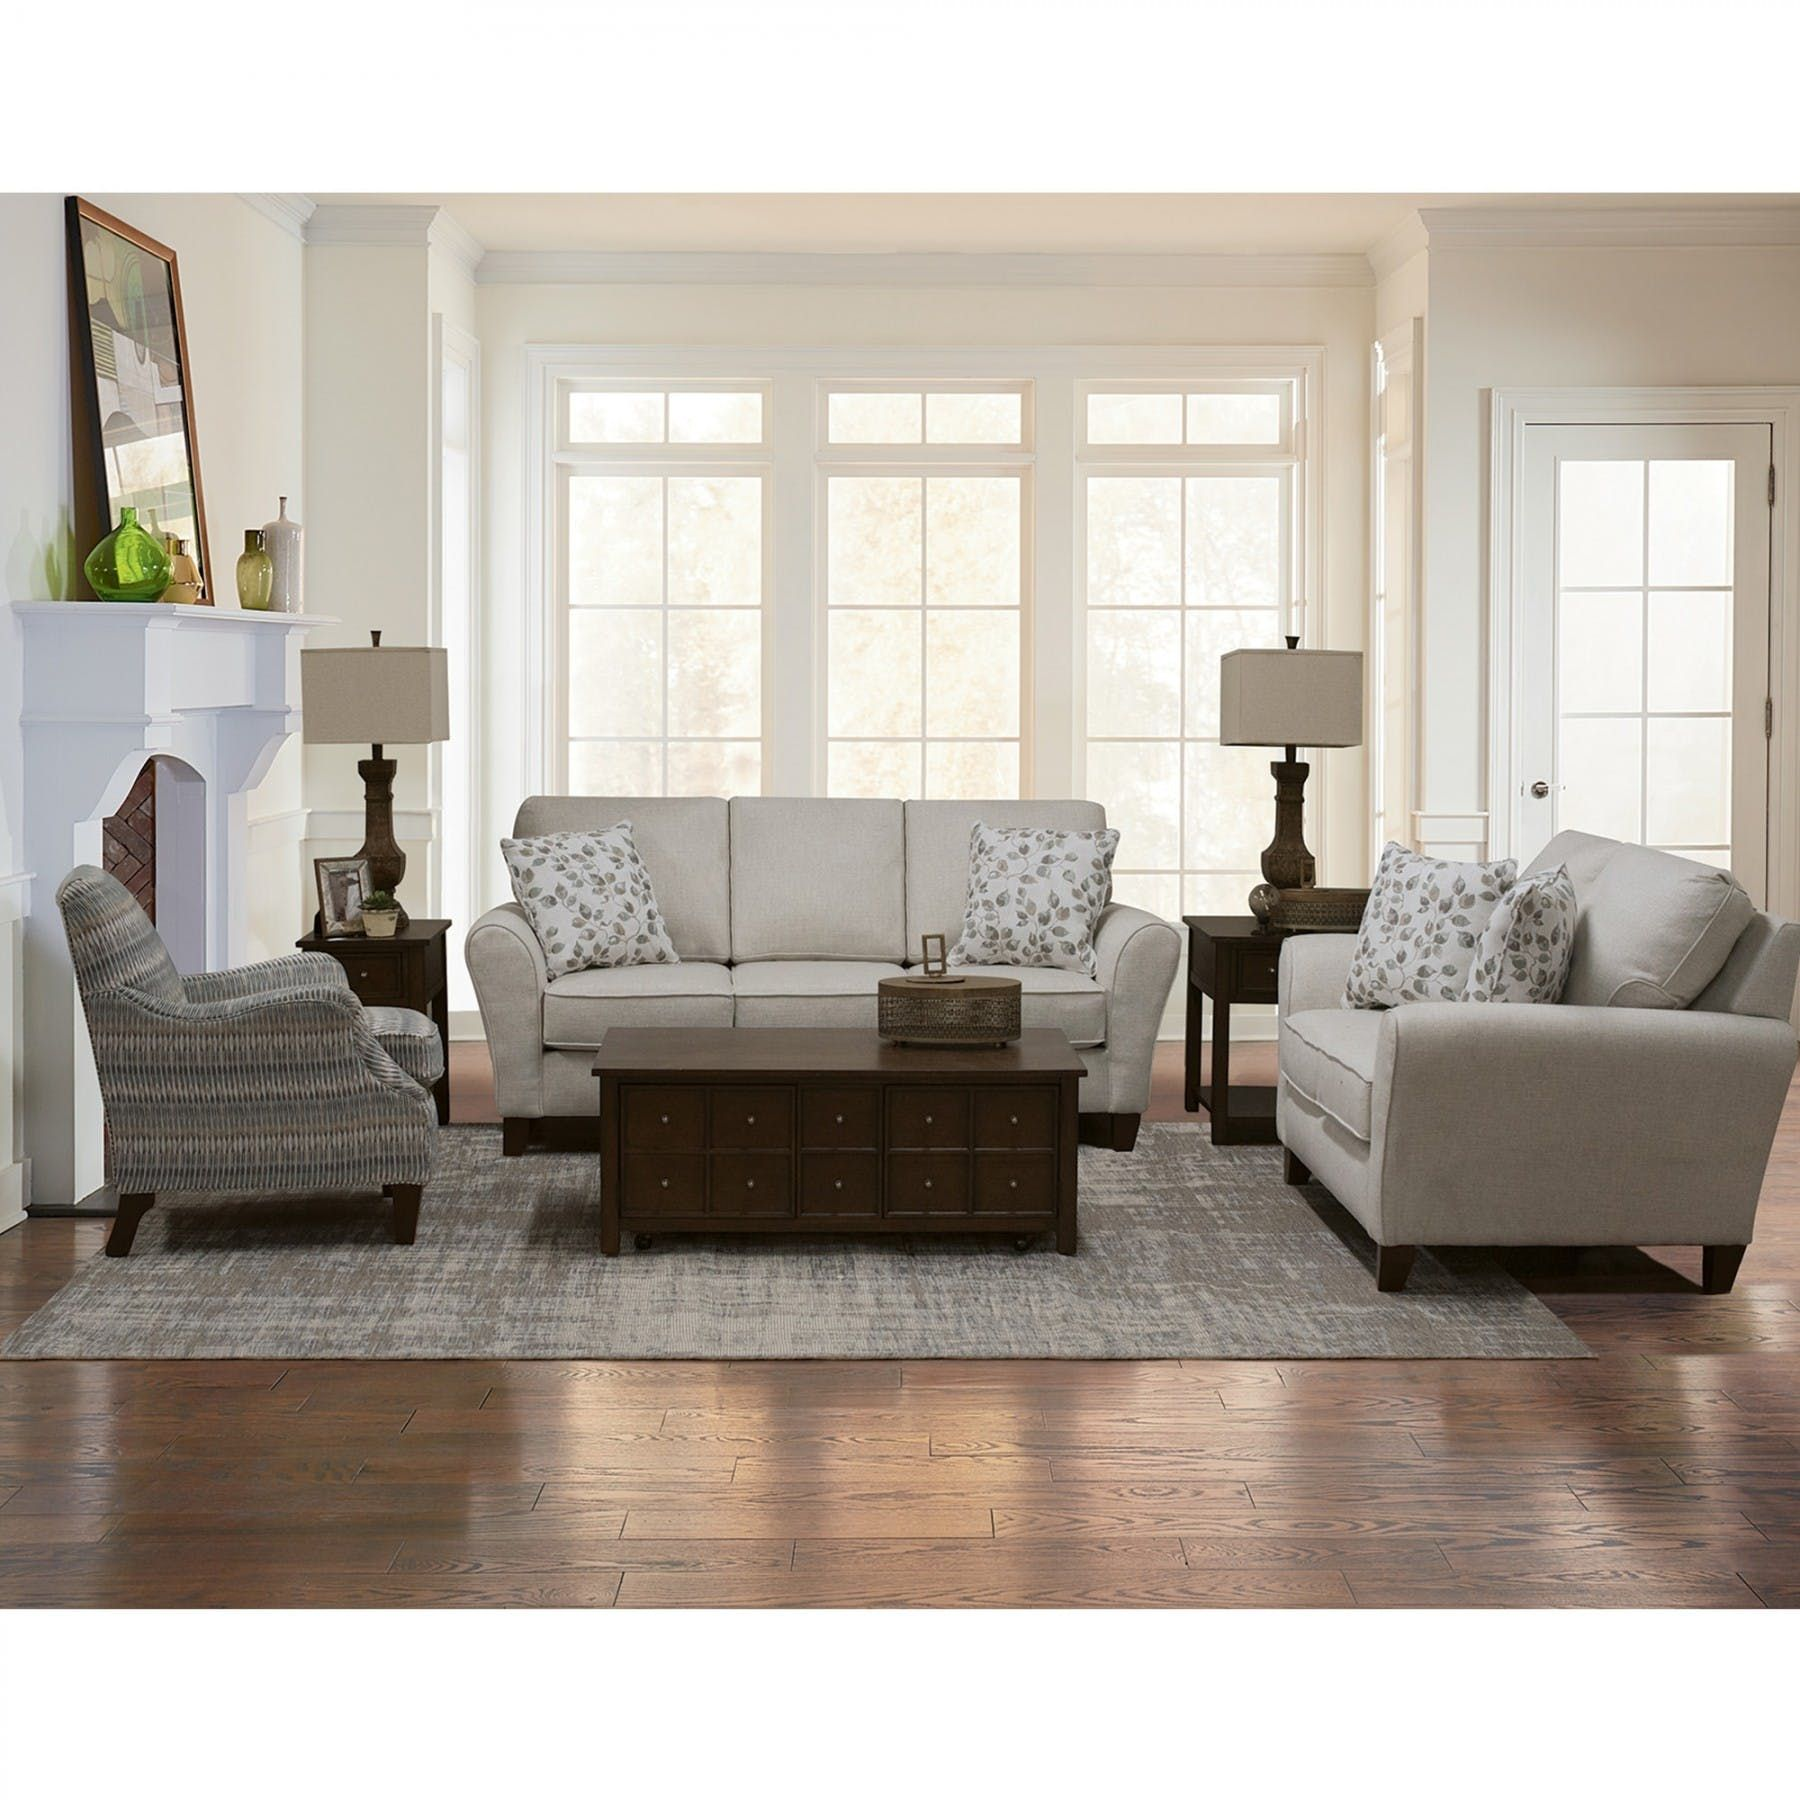 Paxton Sofa Sofas Living Room Bernie Phyl S Furniture By